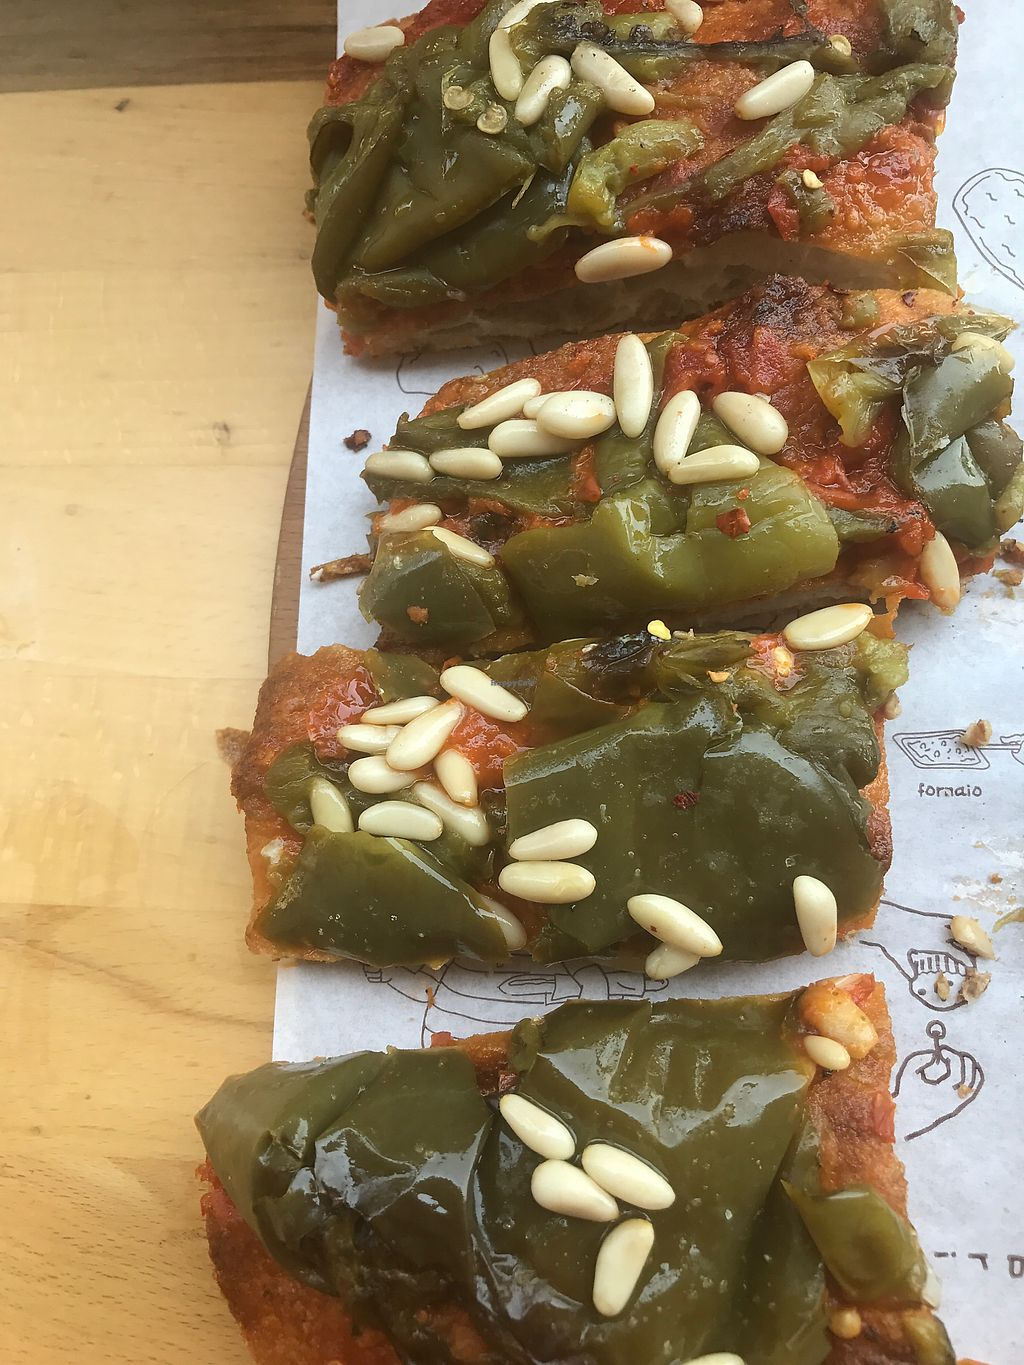 "Photo of Pizzarium Bonci Gabriele  by <a href=""/members/profile/NatalieJadeW"">NatalieJadeW</a> <br/>Roasted peppers & pine nuts - delicious! <br/> June 27, 2017  - <a href='/contact/abuse/image/47845/274042'>Report</a>"